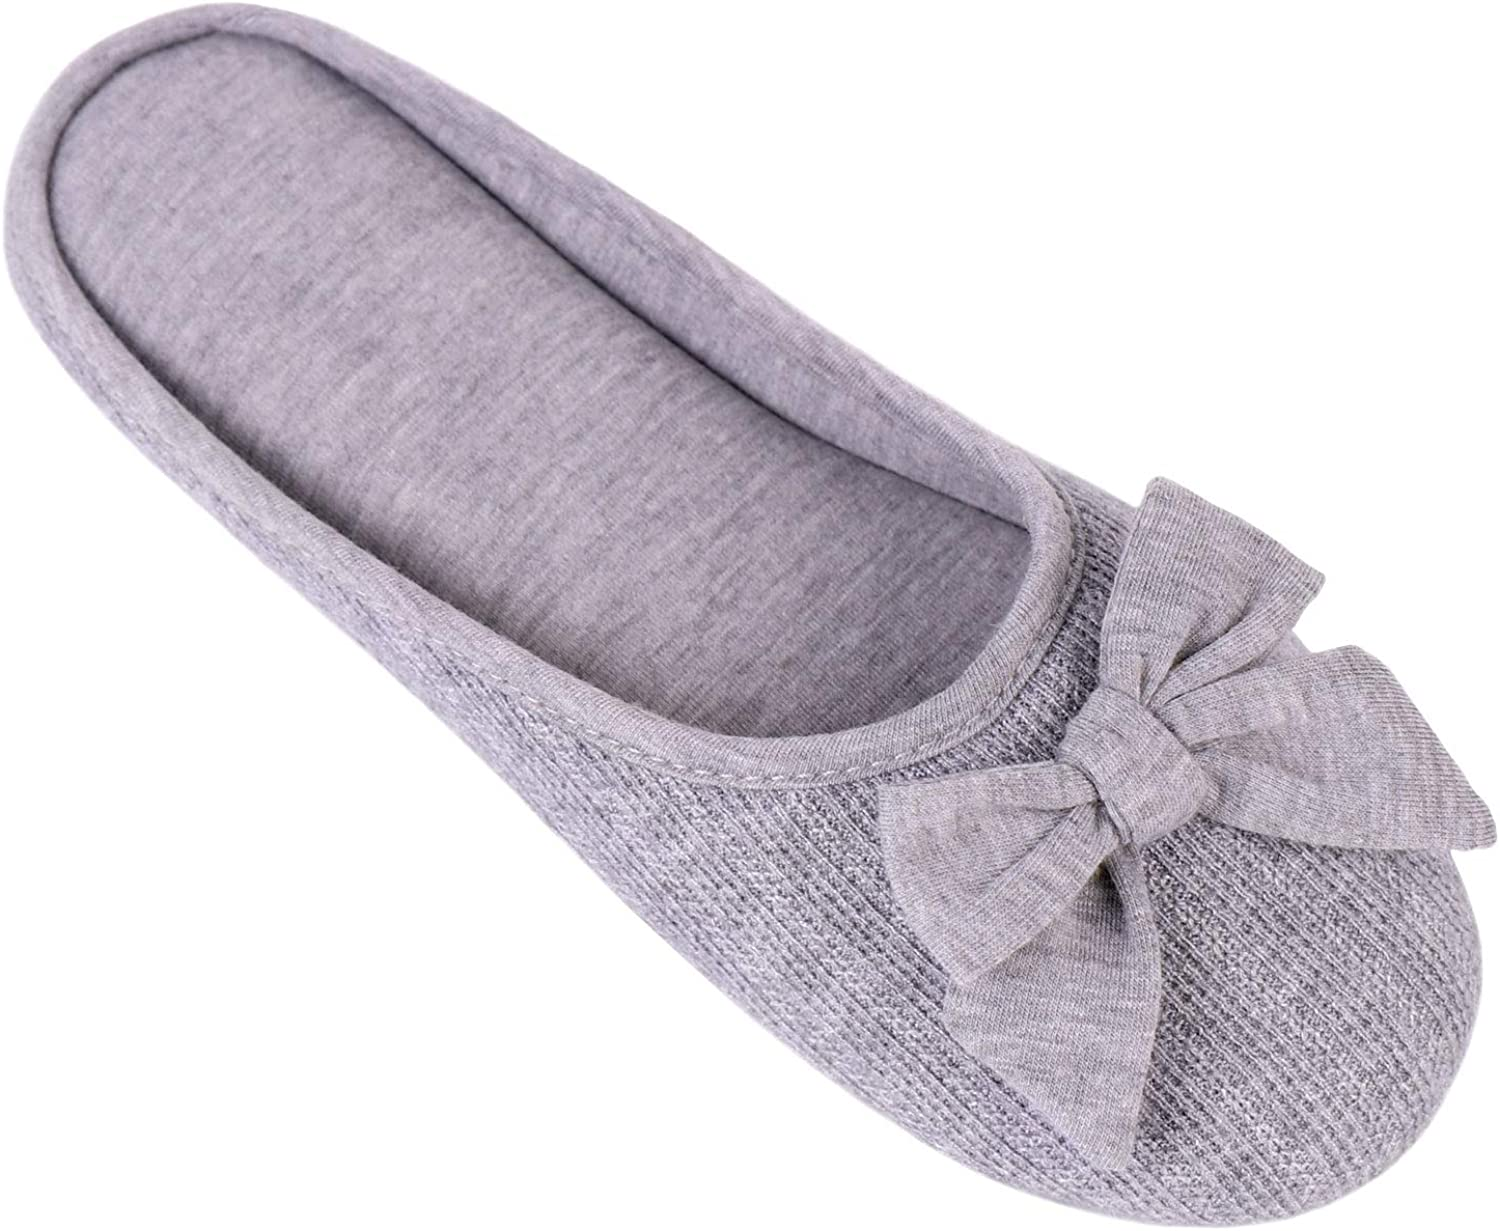 HomeTop Women's Cozy Cashmere Cotton Closed Toe House Slippers with Cute Bow Accent